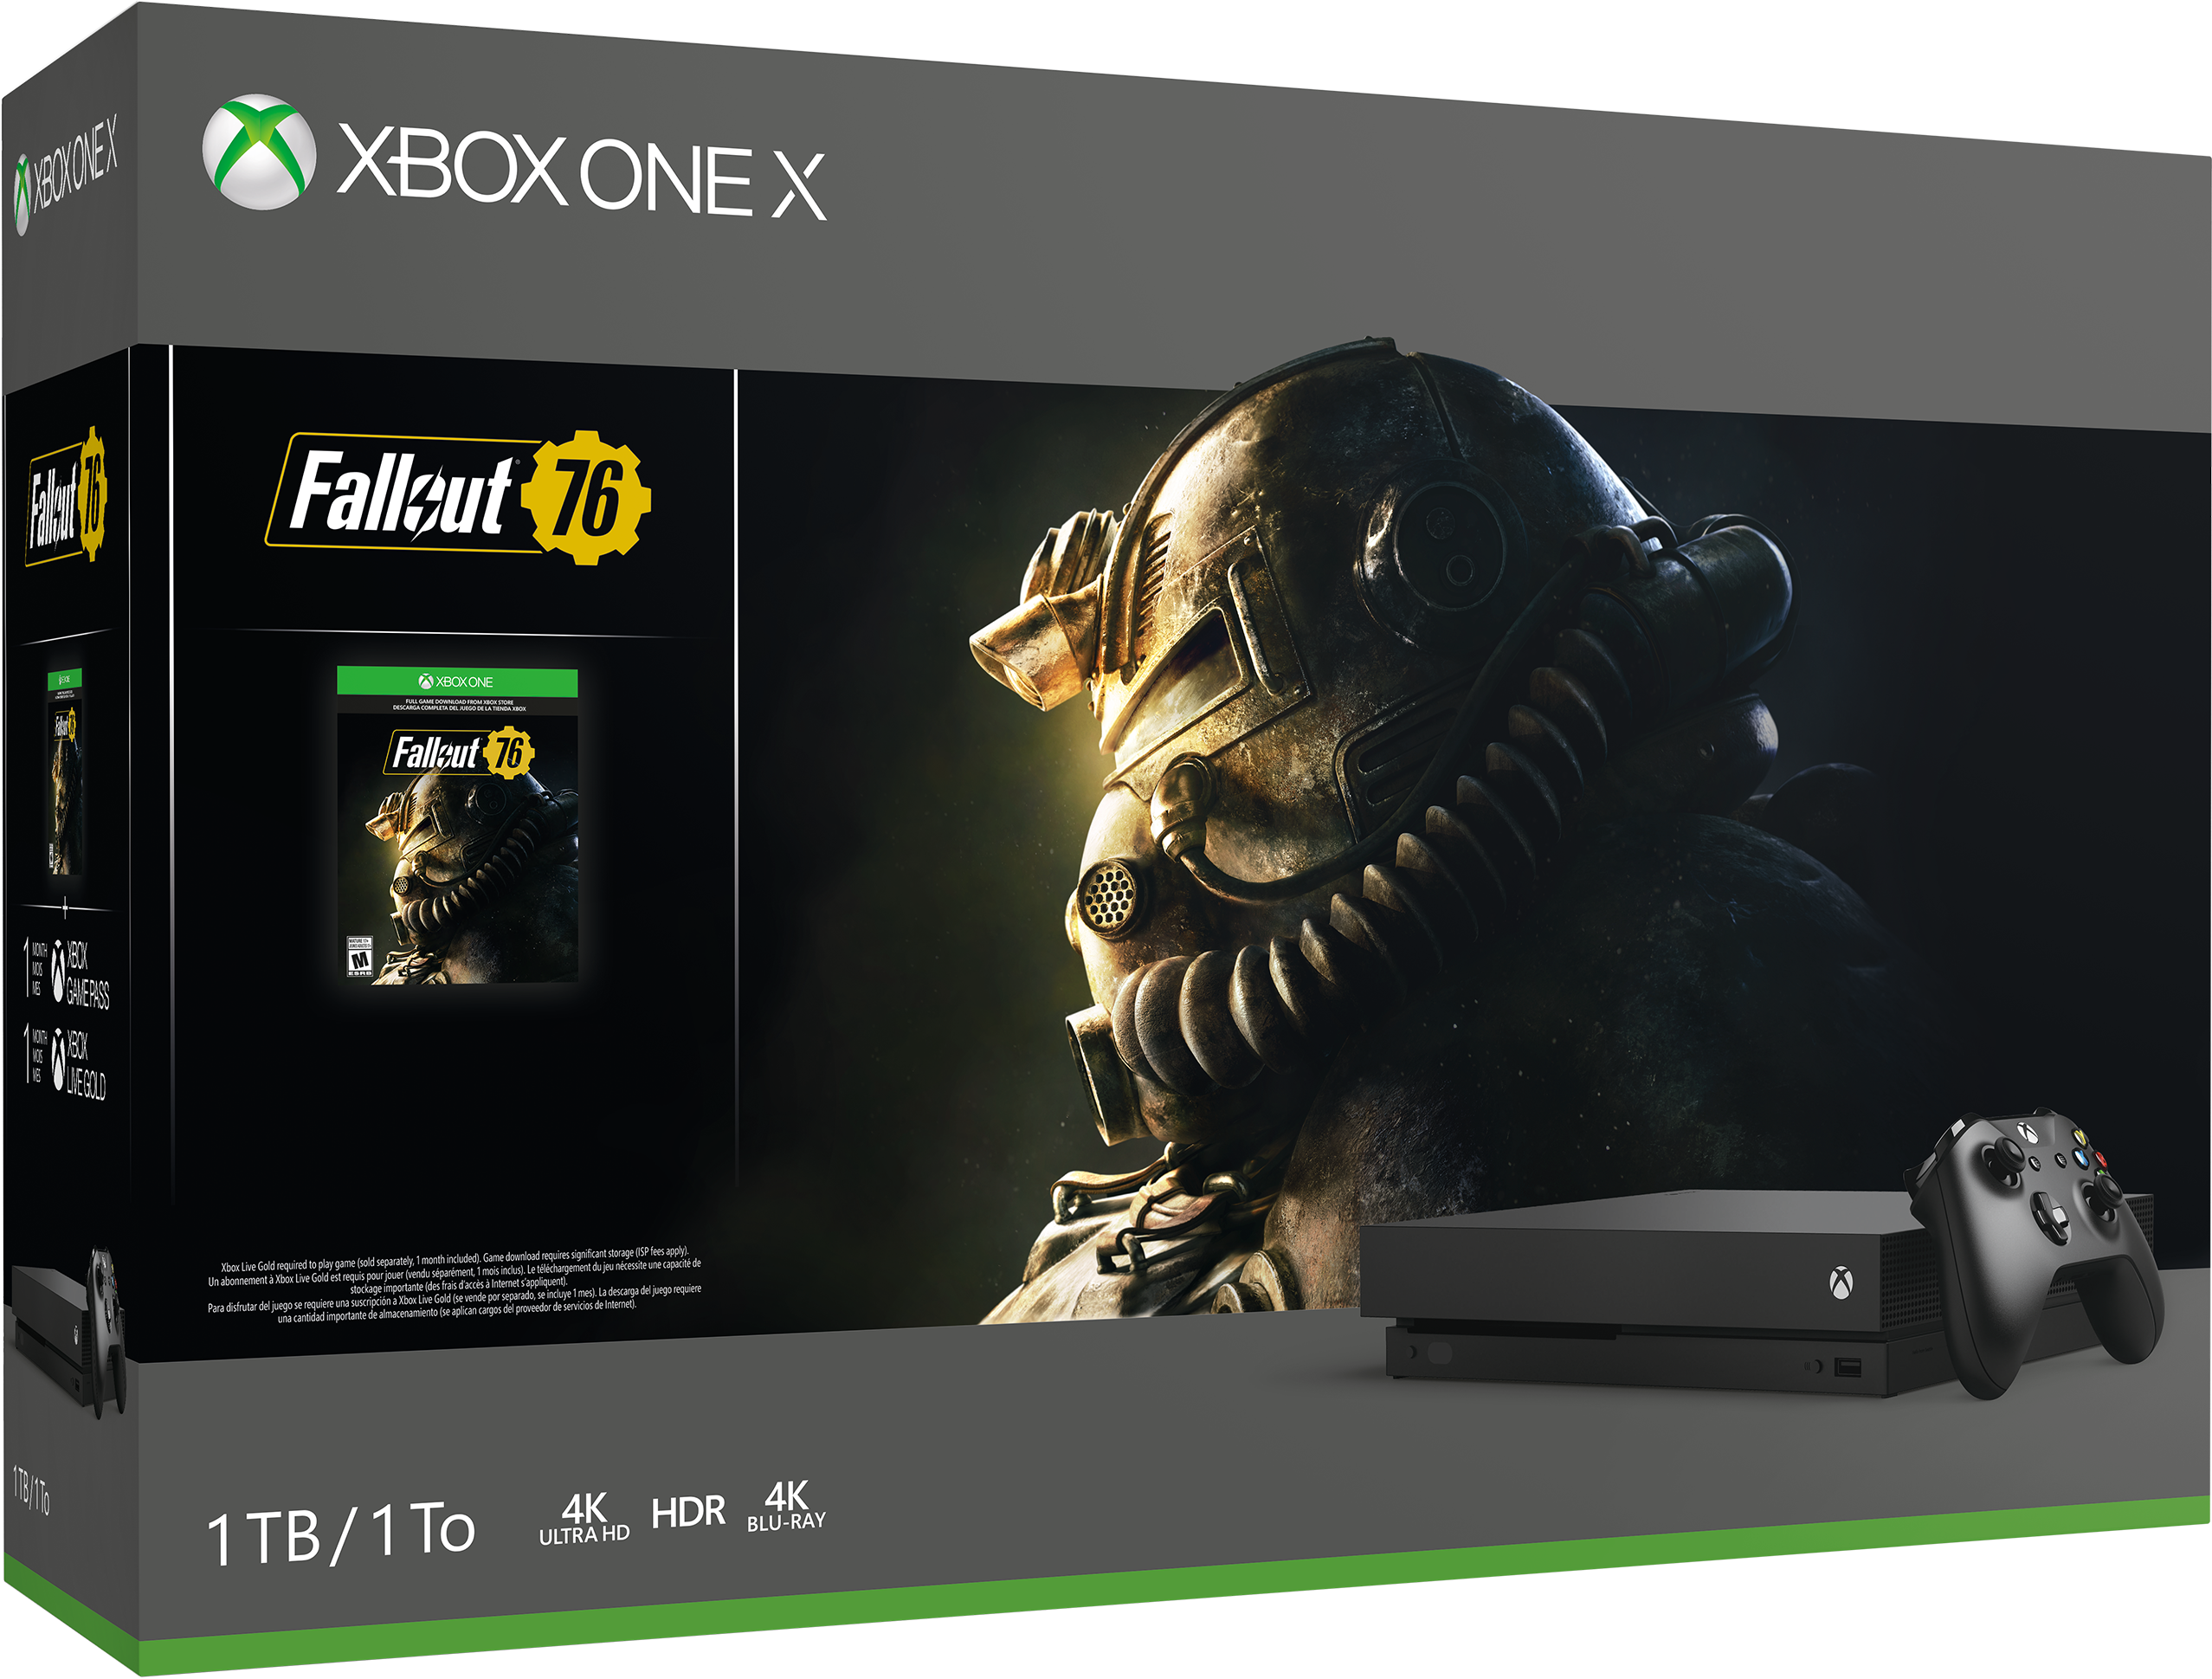 Xbox One X Fallout 76 Bundle with a generic game box